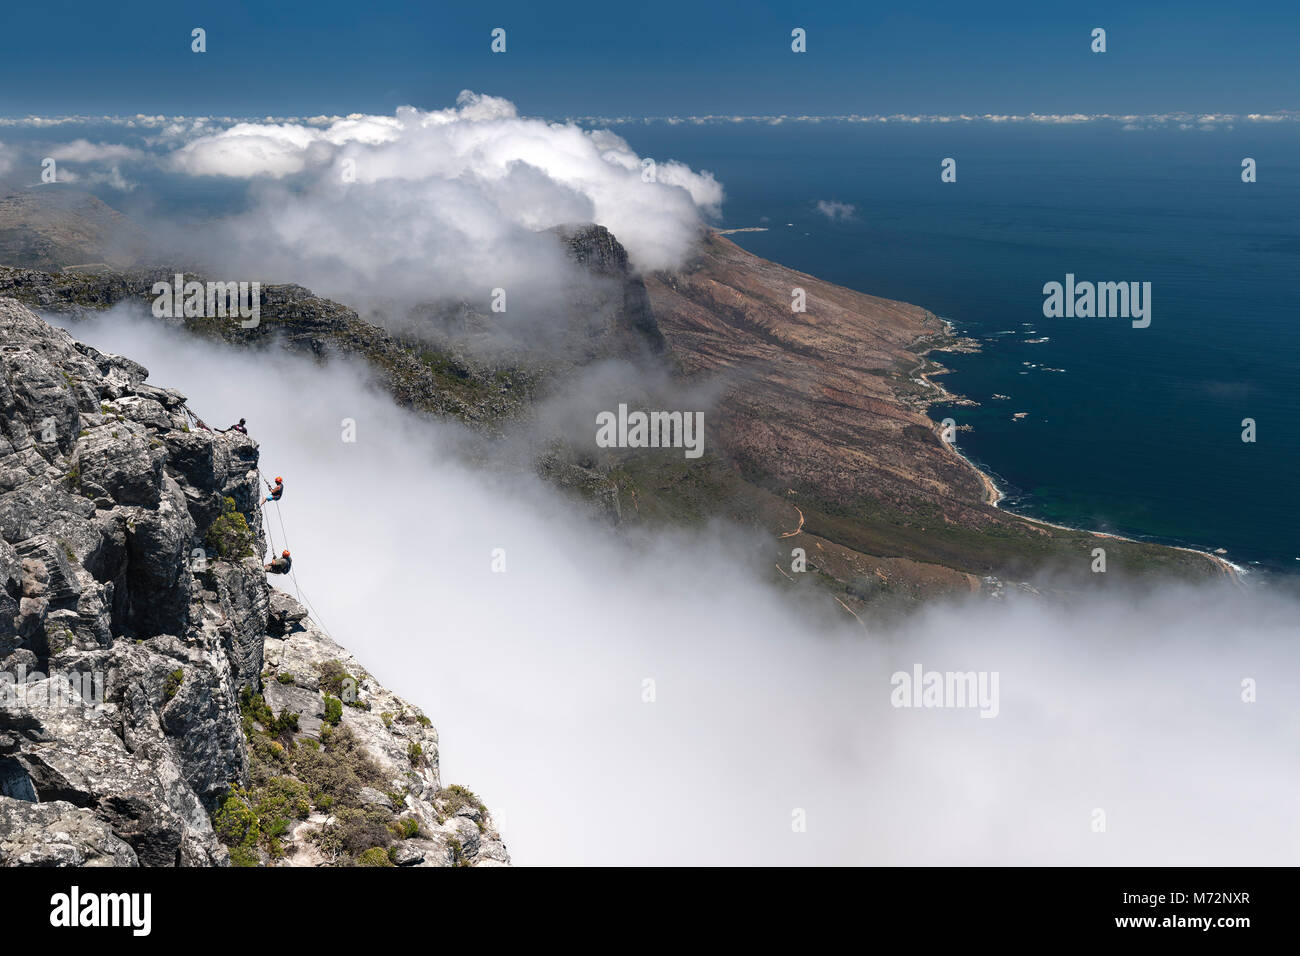 Abseilers abseiling off the summit of Table Mountain with Cape Town's Atlantic coastline in the background. Stock Photo